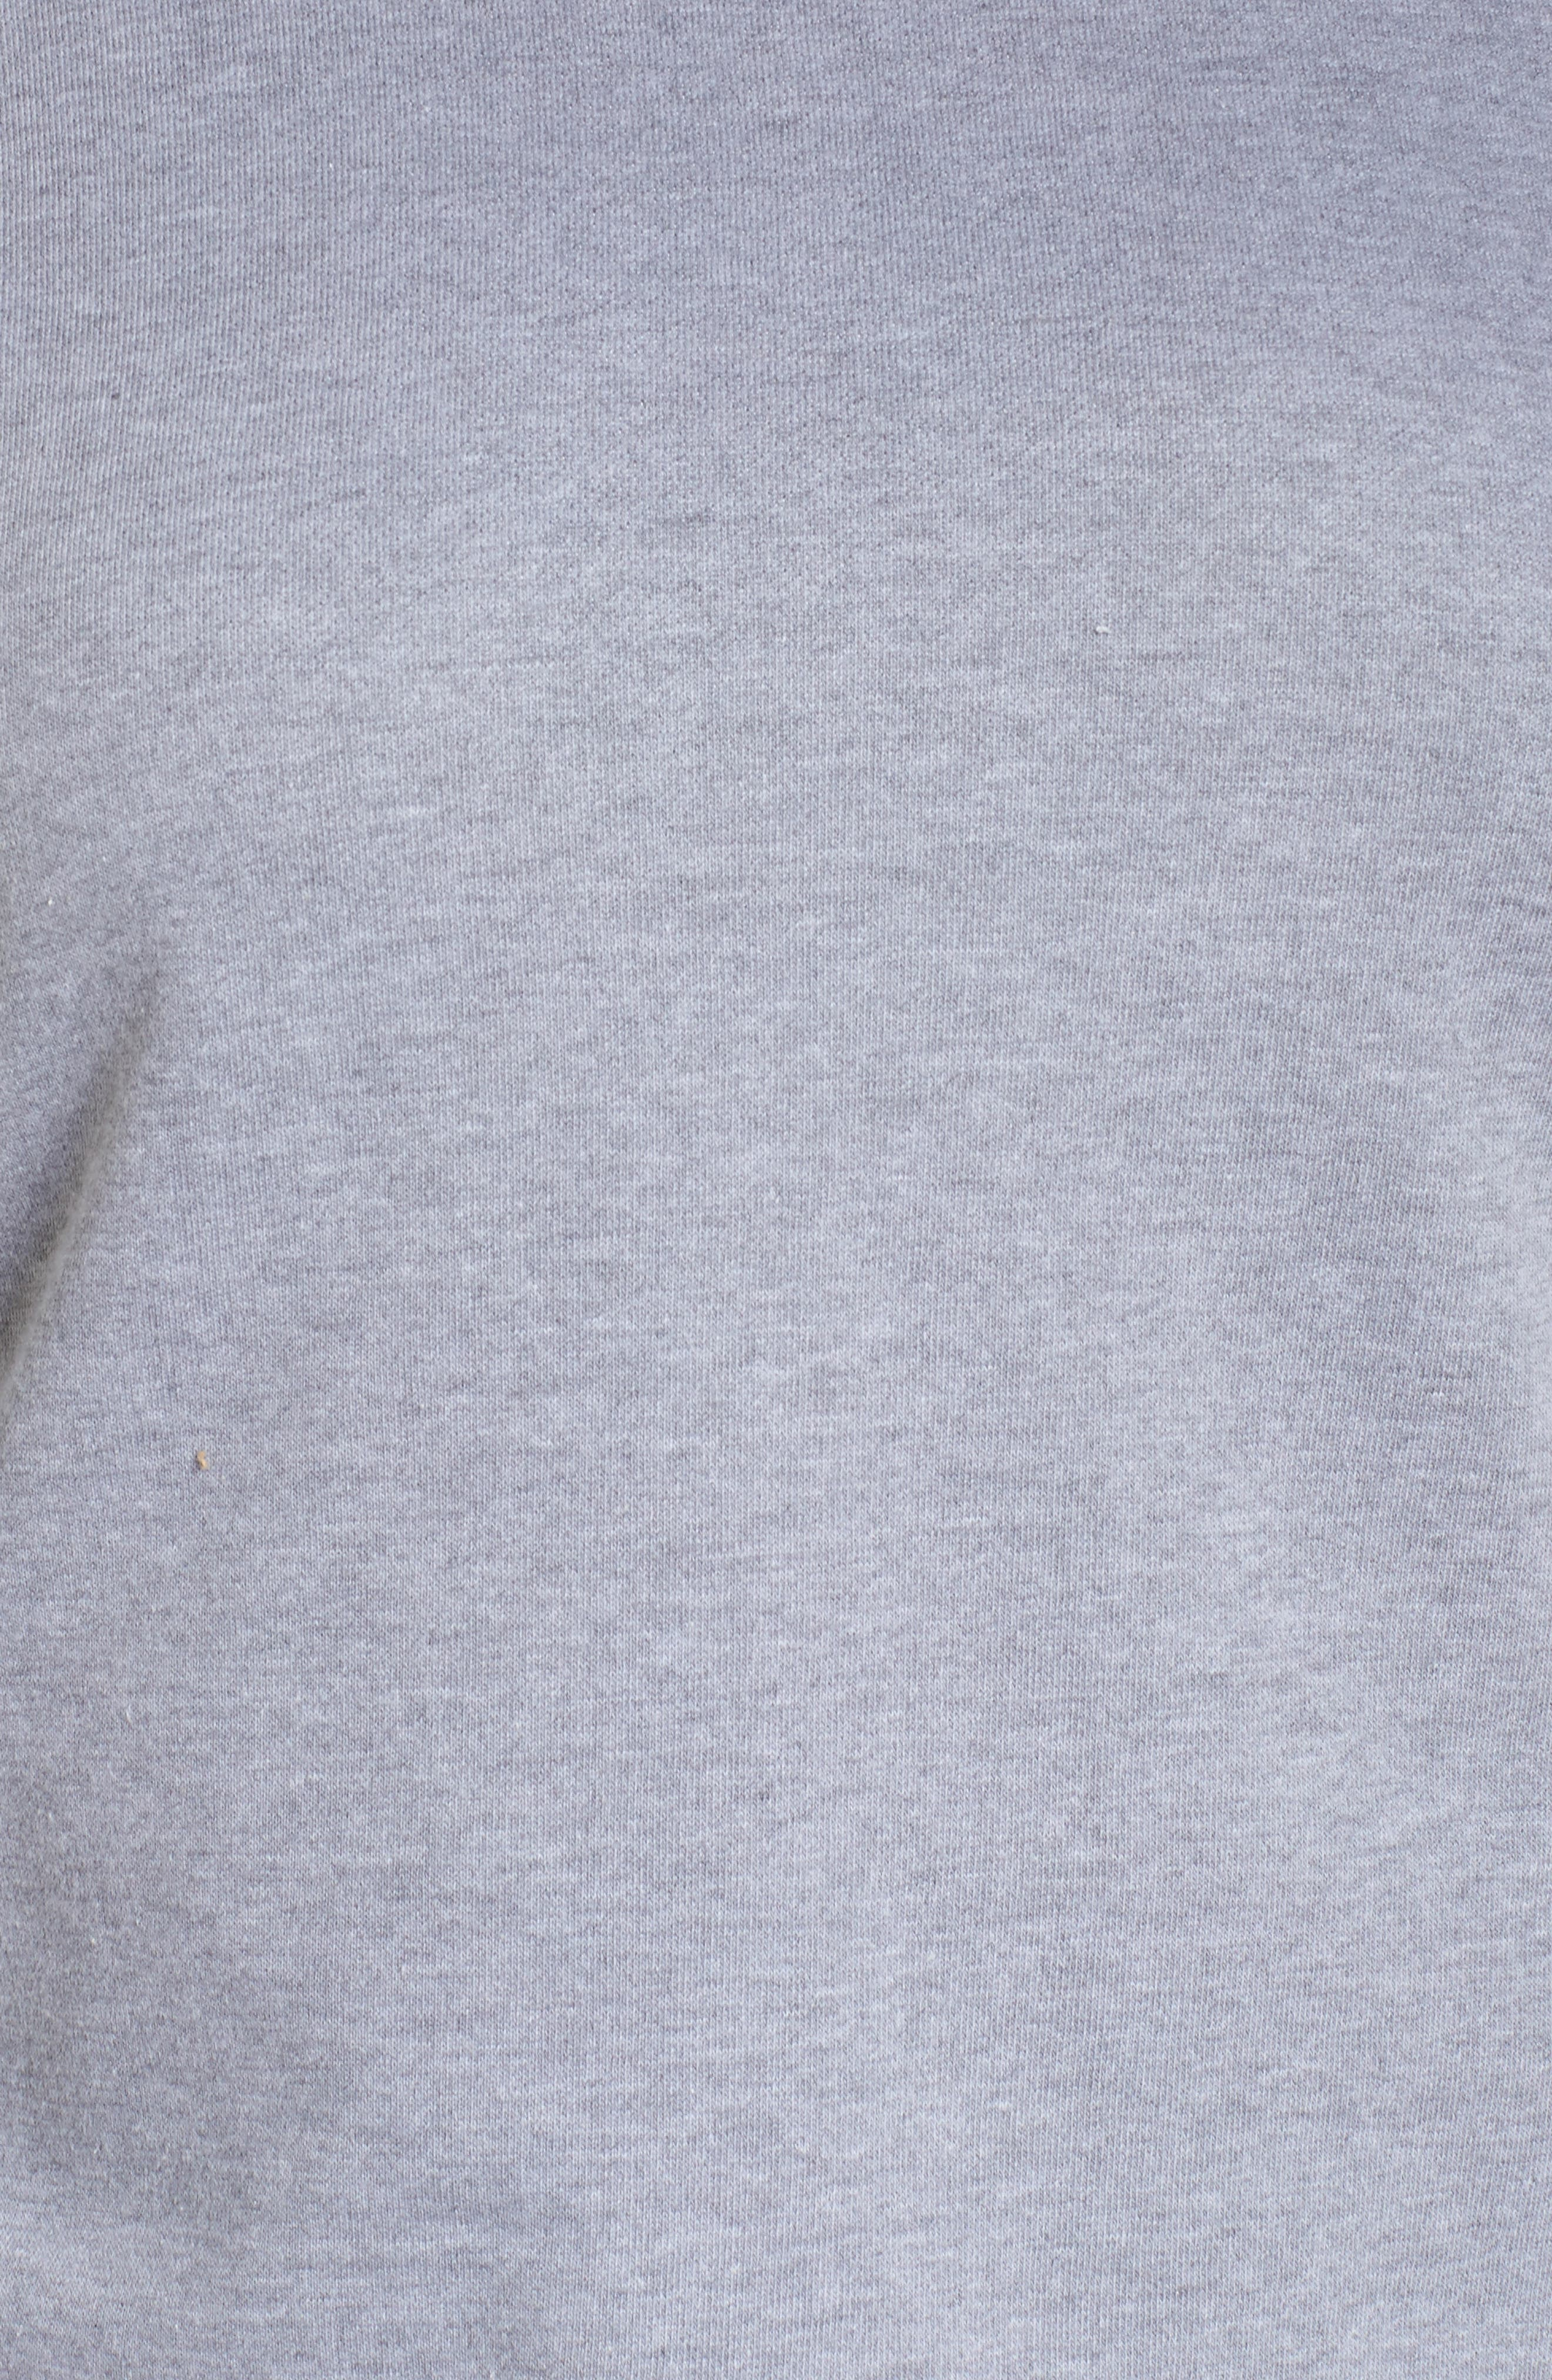 Broderie Anglaise Embellished Sweatshirt,                             Alternate thumbnail 5, color,                             020